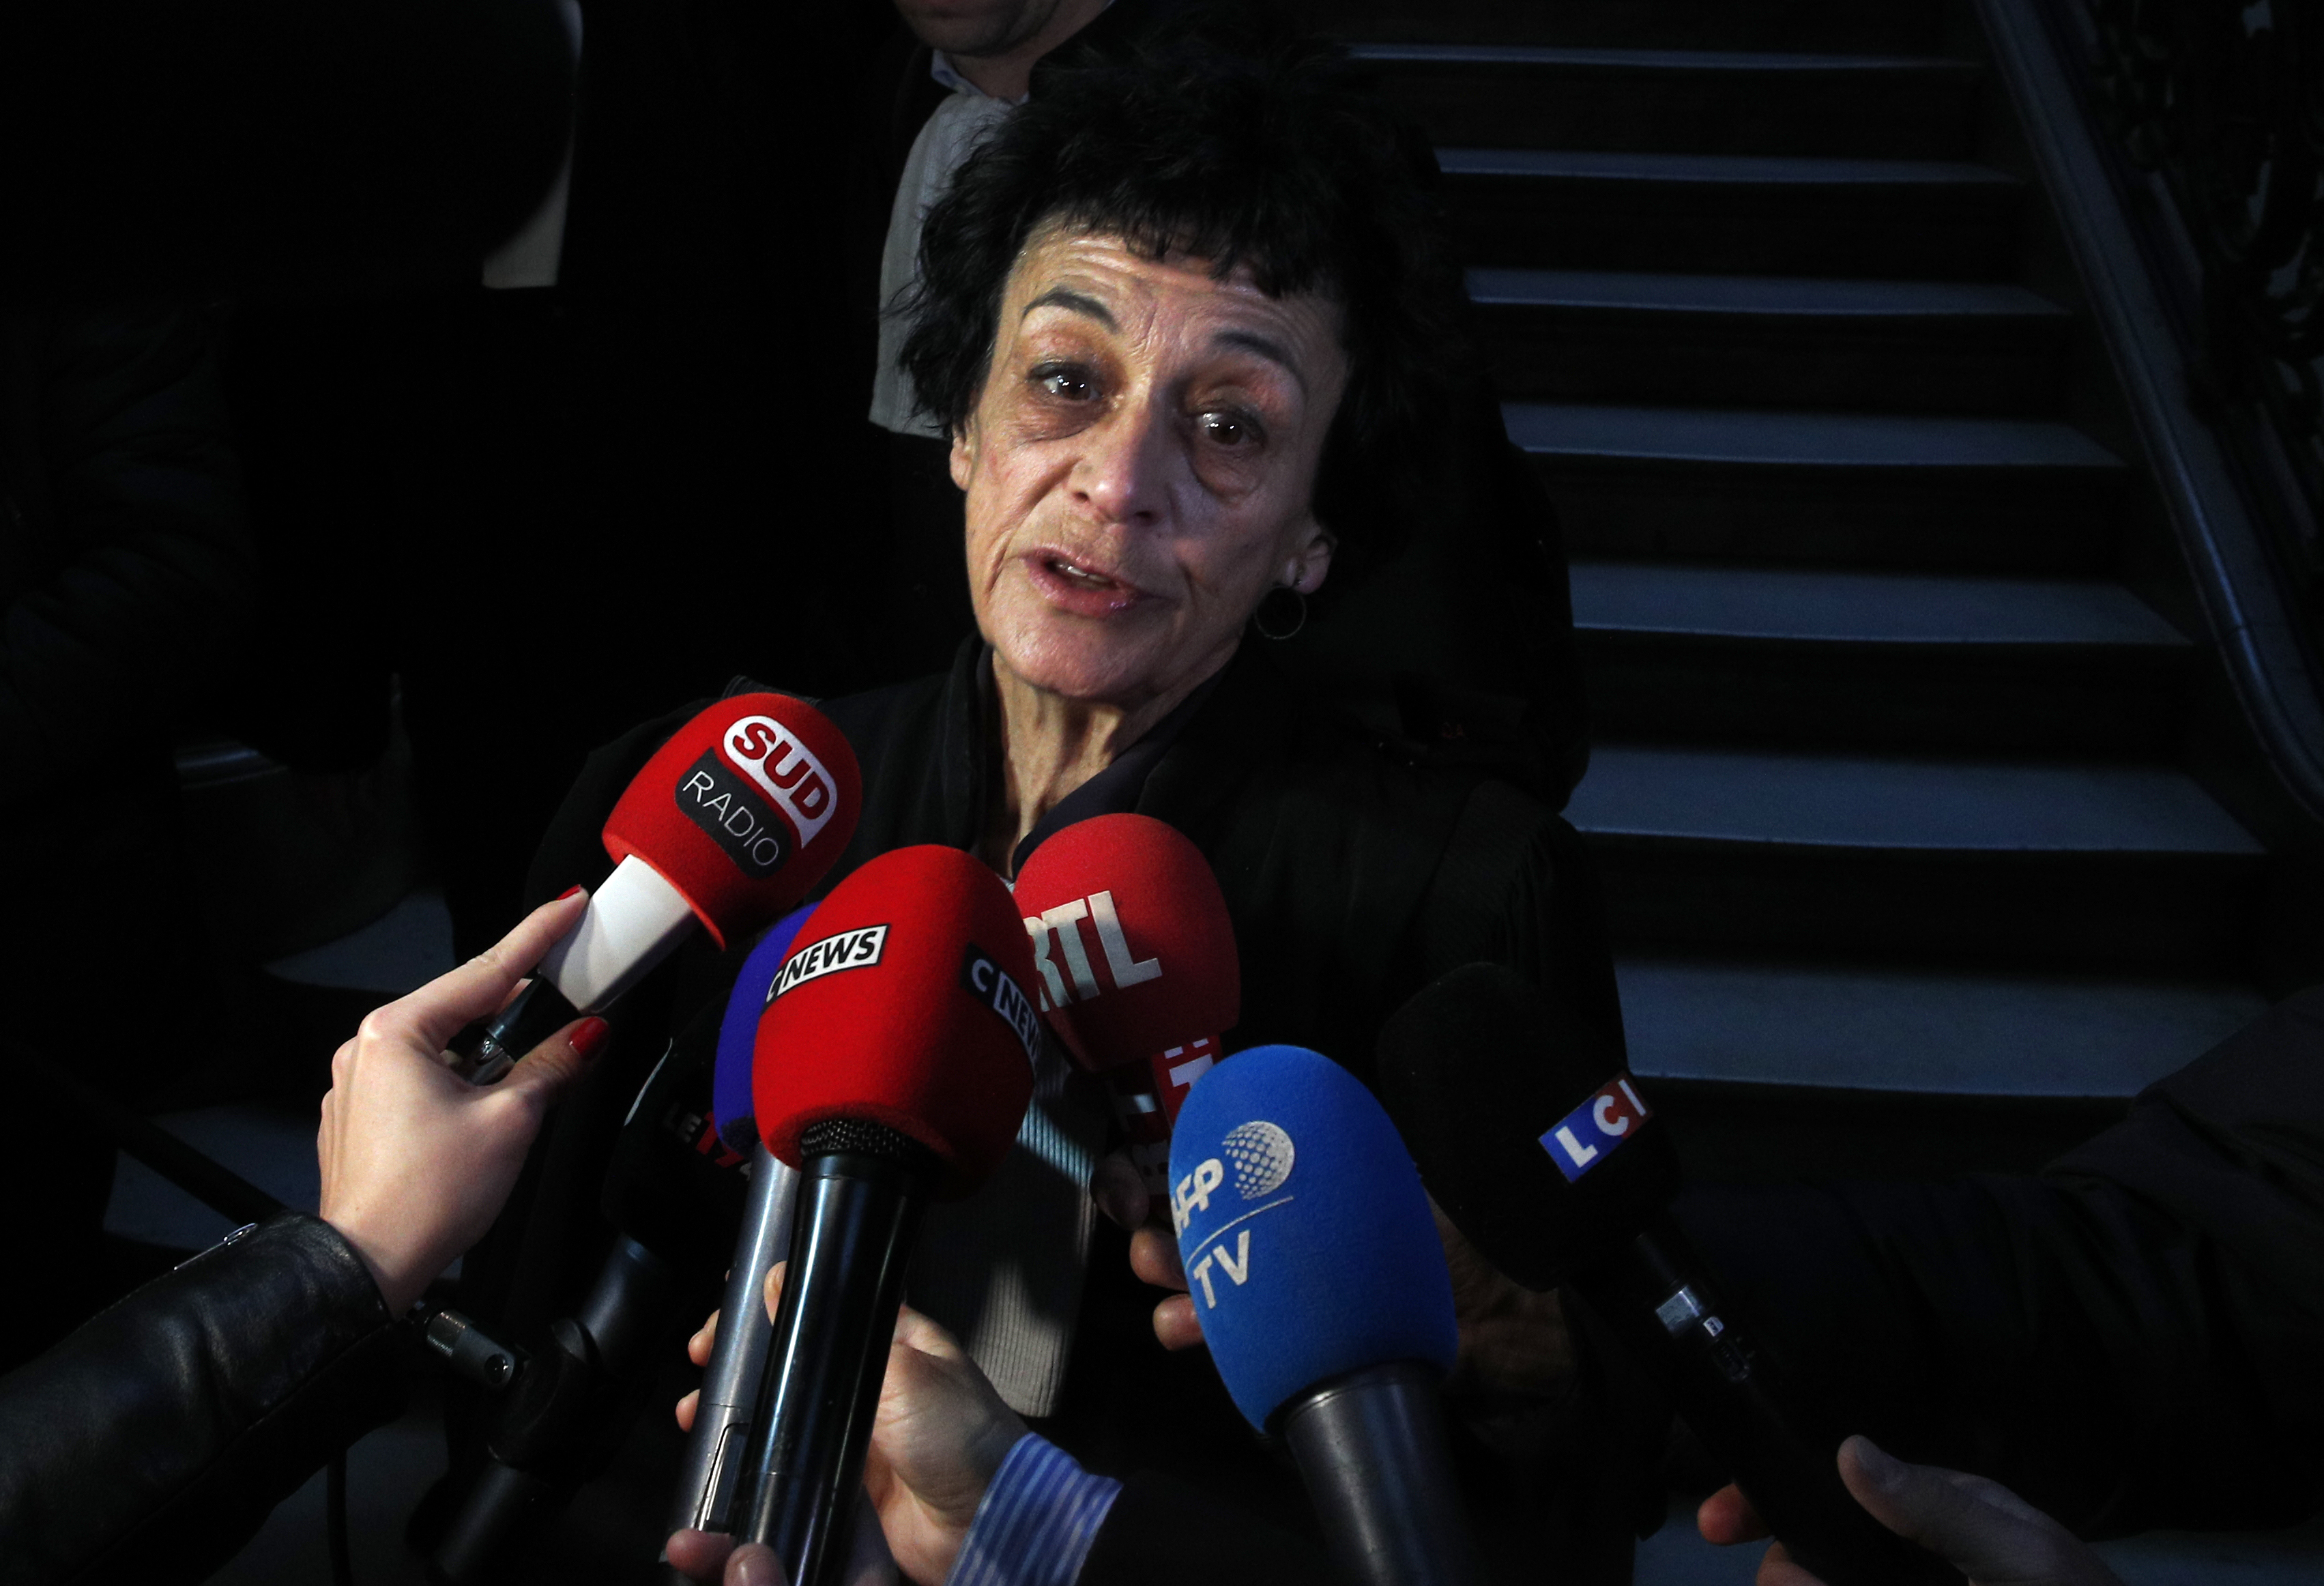 Carlos the Jackal's lawyer Isabelle Coutant-Peyre, answers reporters at the Paris court, France on March 13, 2017. (AP Photo/Christophe Ena)